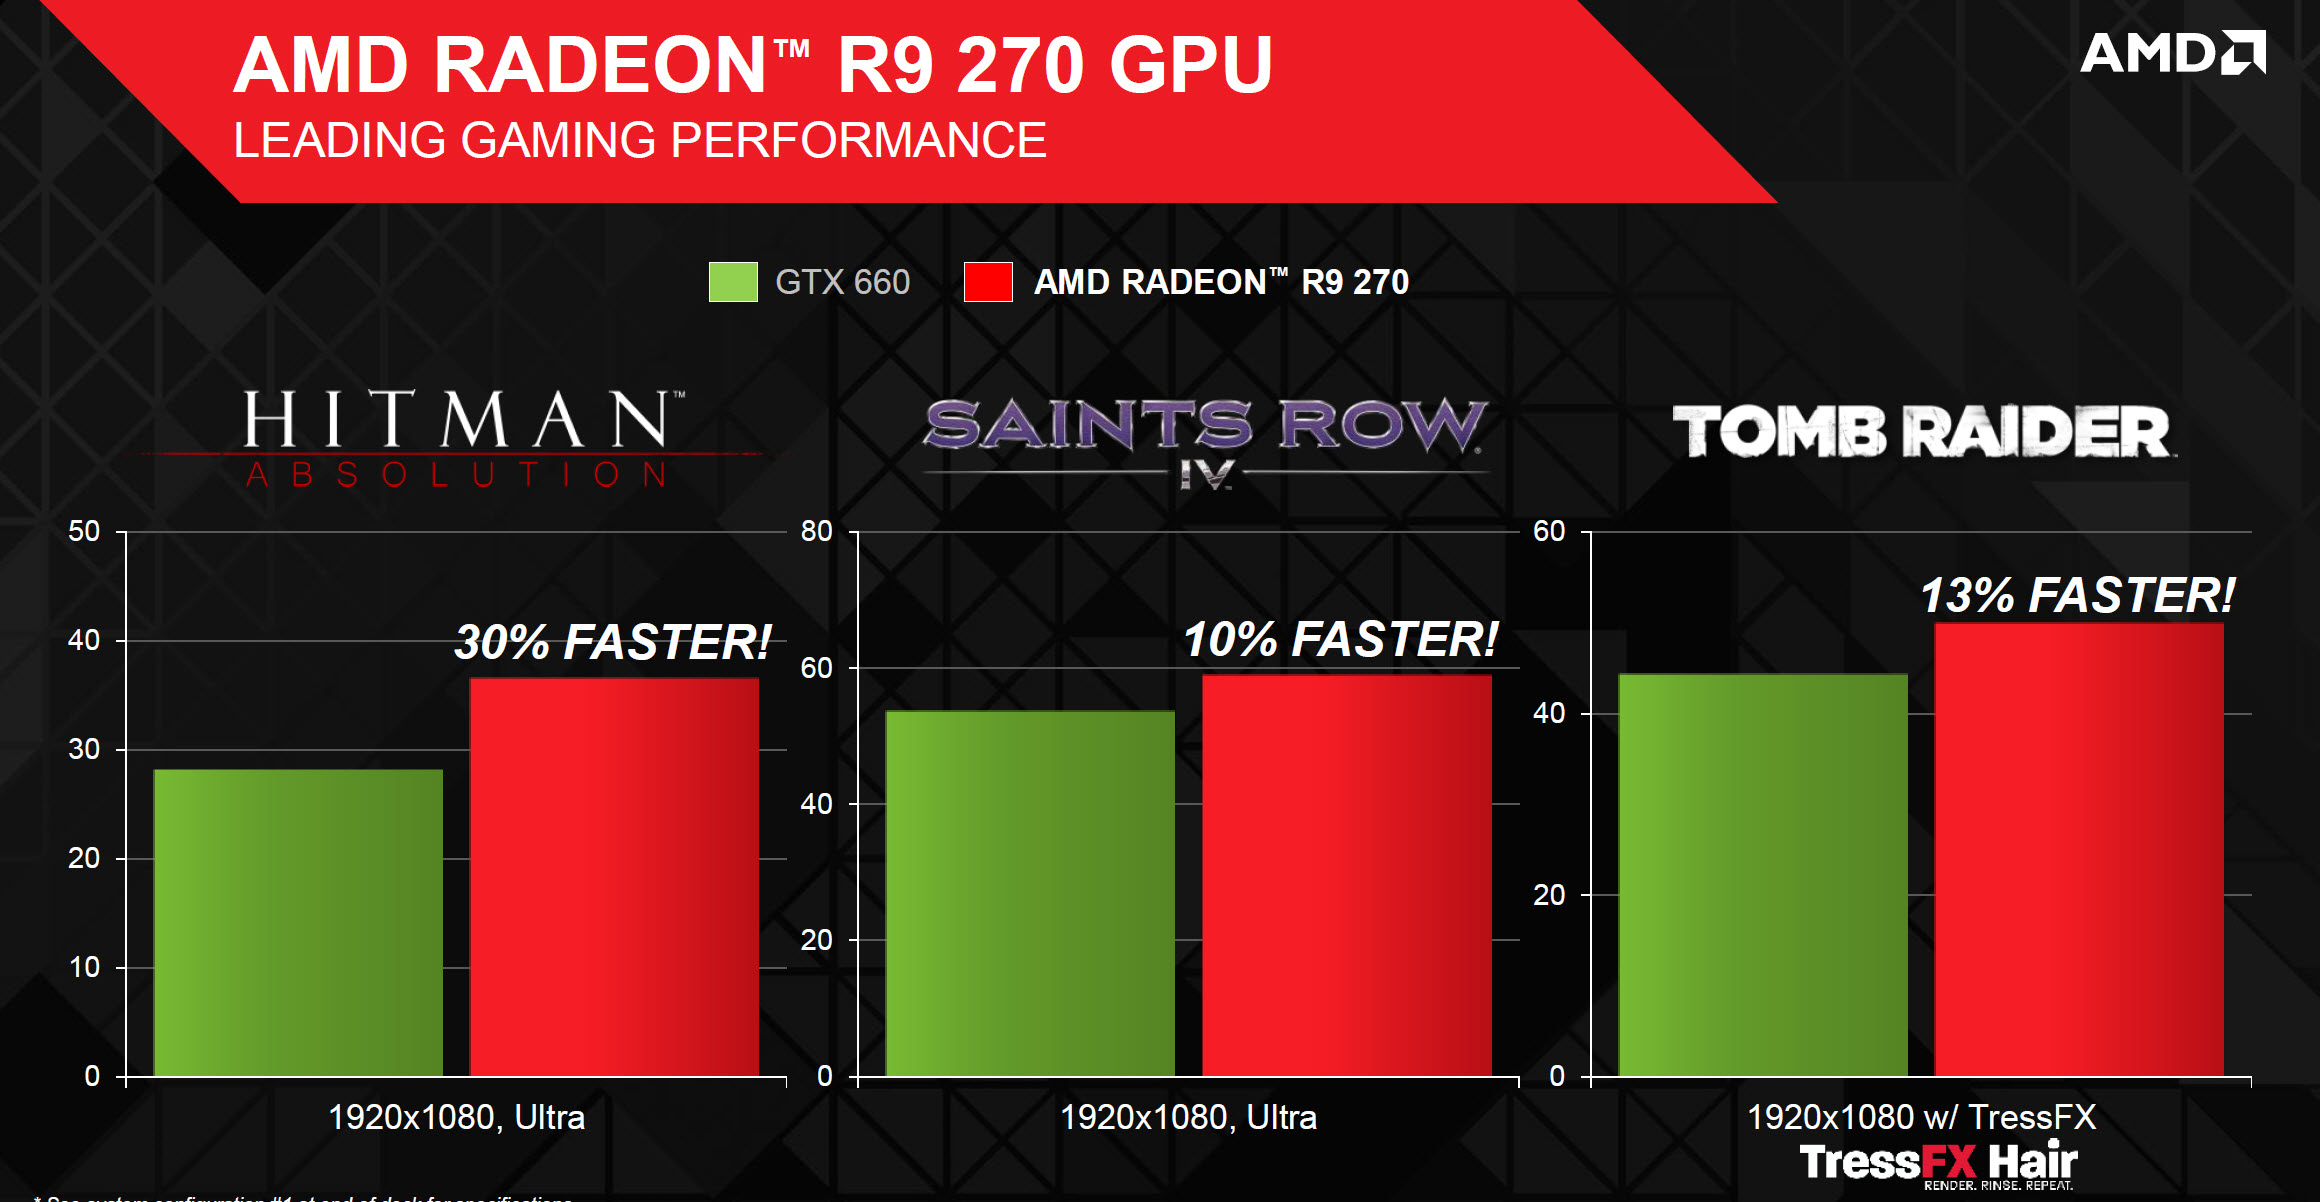 AMD Launches The Radeon R9 270 'Curacao Pro' Graphics Card